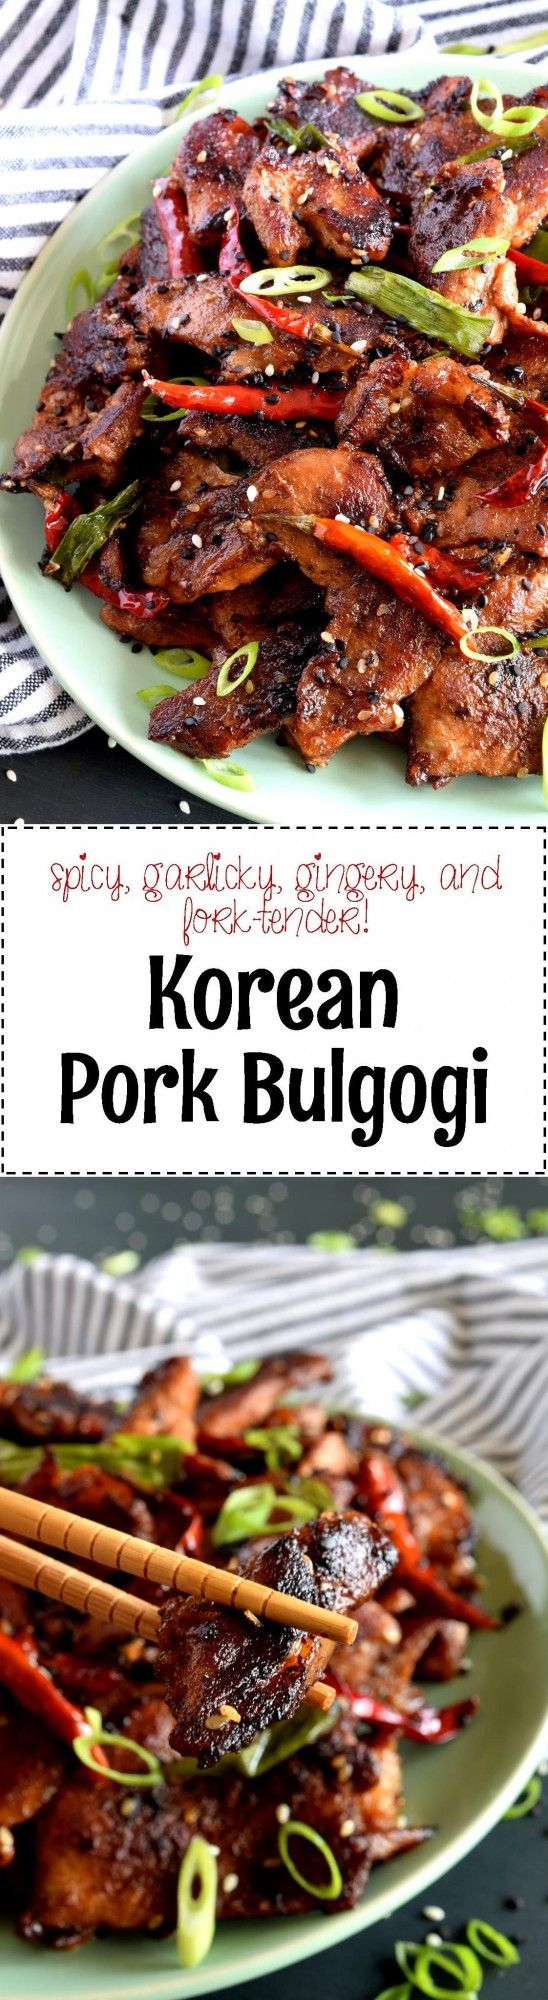 Thinly sliced, marinated cuts of pork, pan-seared to perfection.  Tender, moist, spicy, and full of flavour.  Pork never tasted so good! Many, many moons ago, I posted a recipe to my blog for a vegetarian version of this dish using…